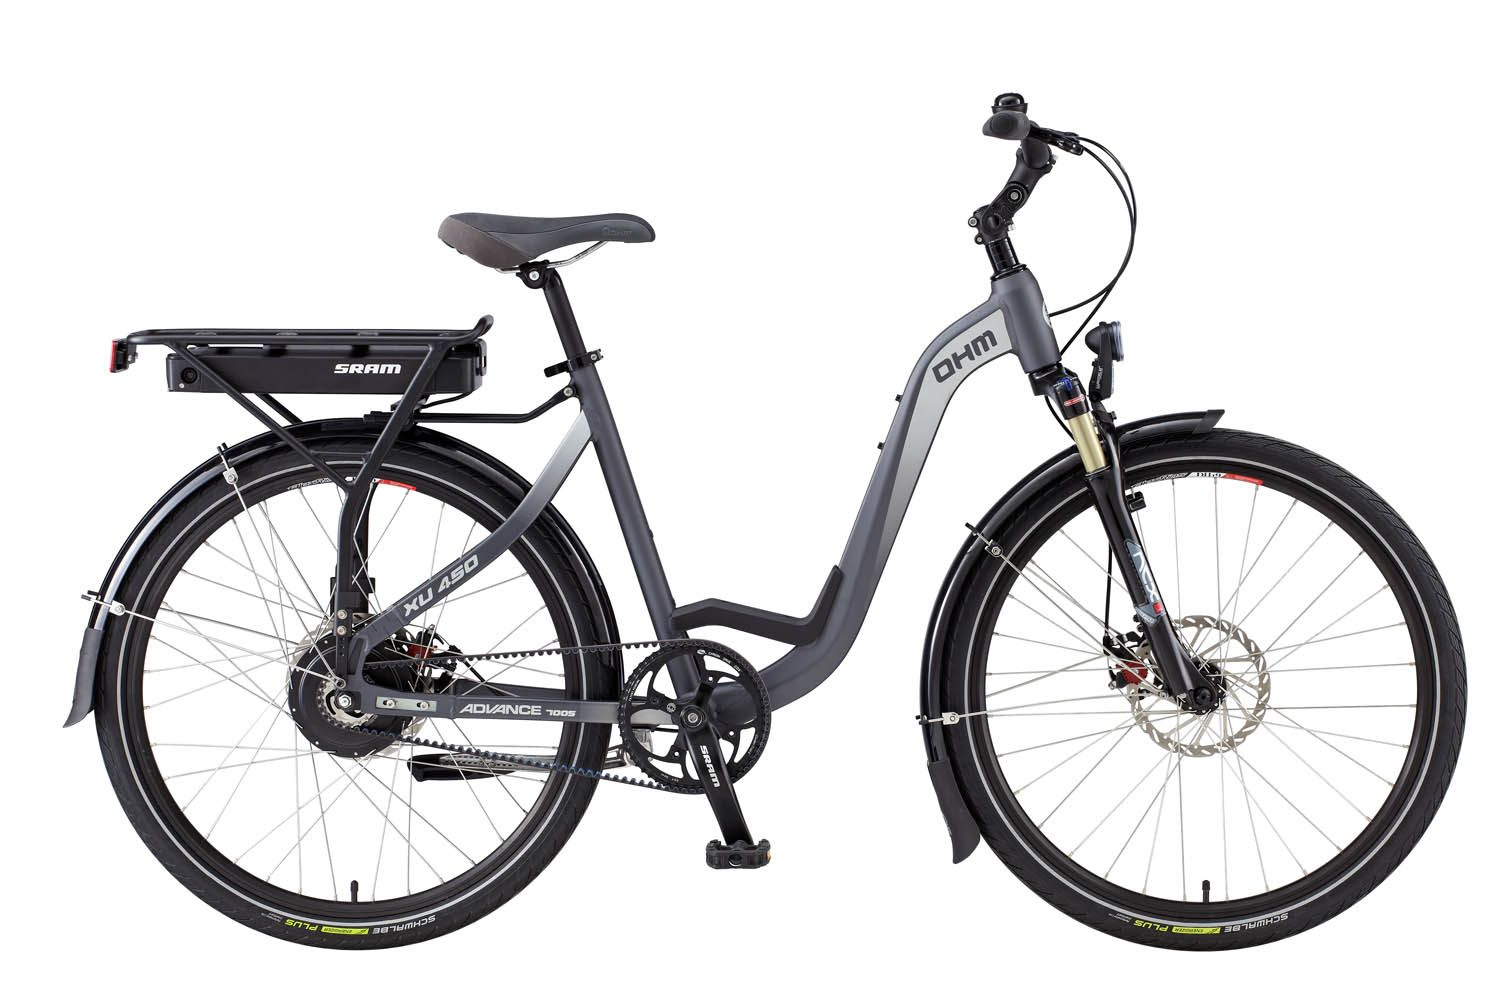 The Ohm Urban Xu450 With Sram E Matic Automatic Shifting System And The Gates Carbon Drive